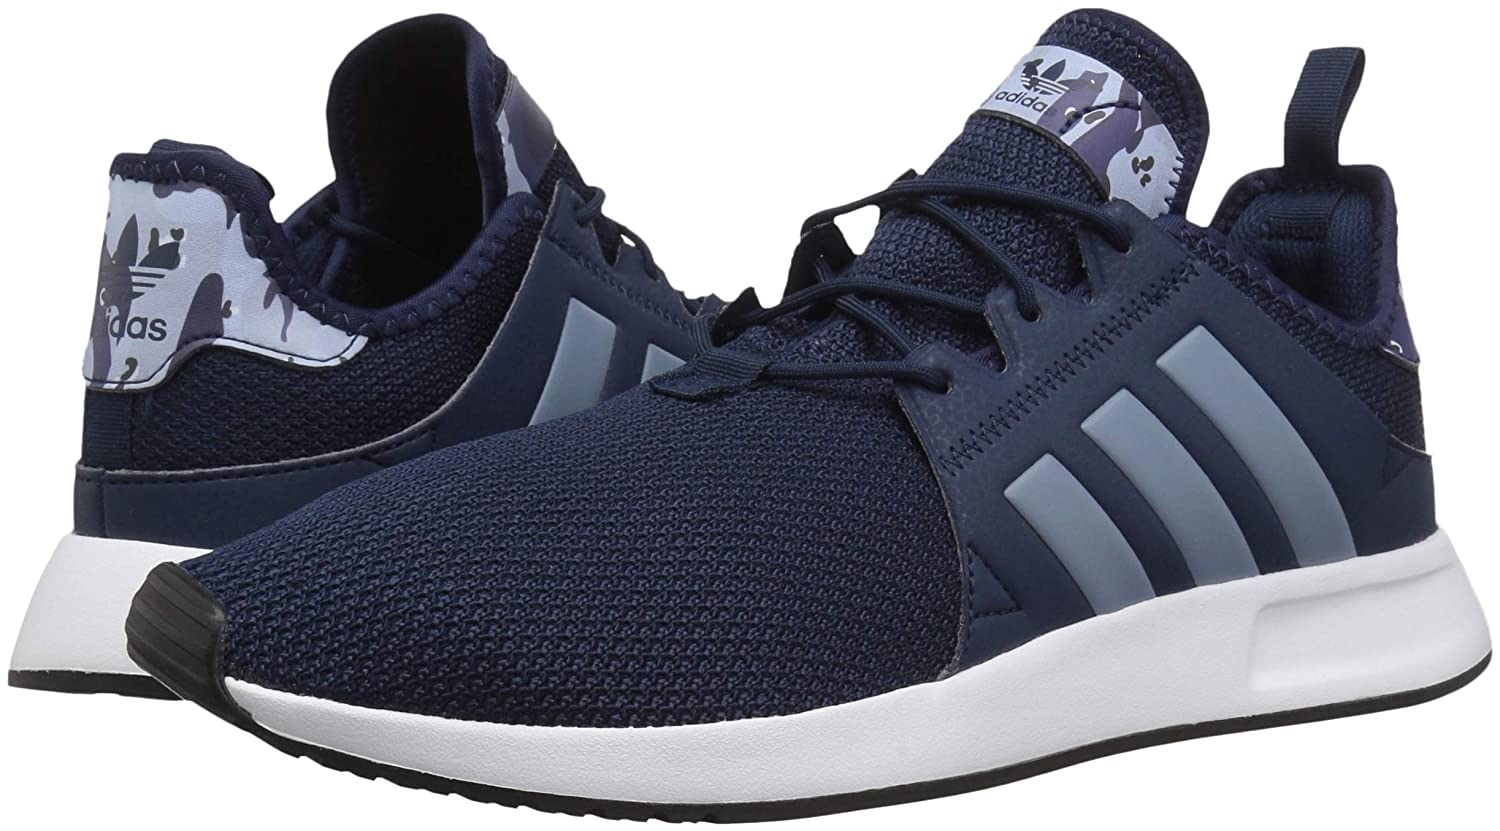 adidas Originals Men's X_PLR Sneakers, Lightweight, Comfortable and Speed Stylish with Speed and Lacing System for Quick On-Off Wear B077X984RF Running 9e3072